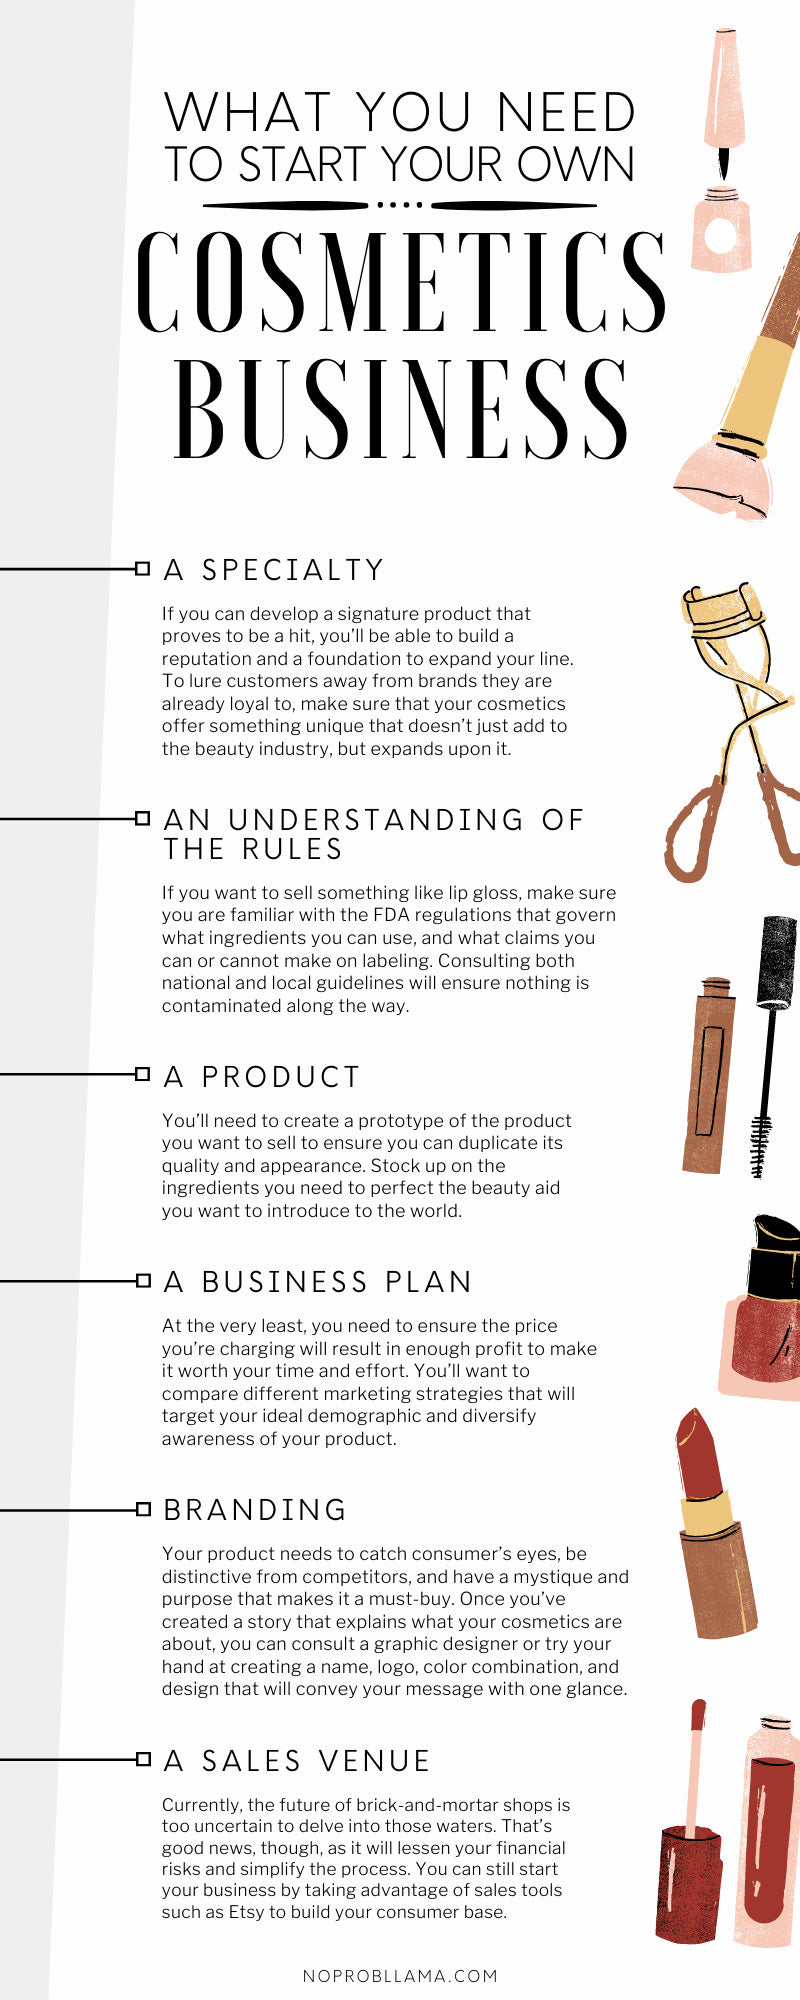 What You Need To Start Your Own Cosmetics Business